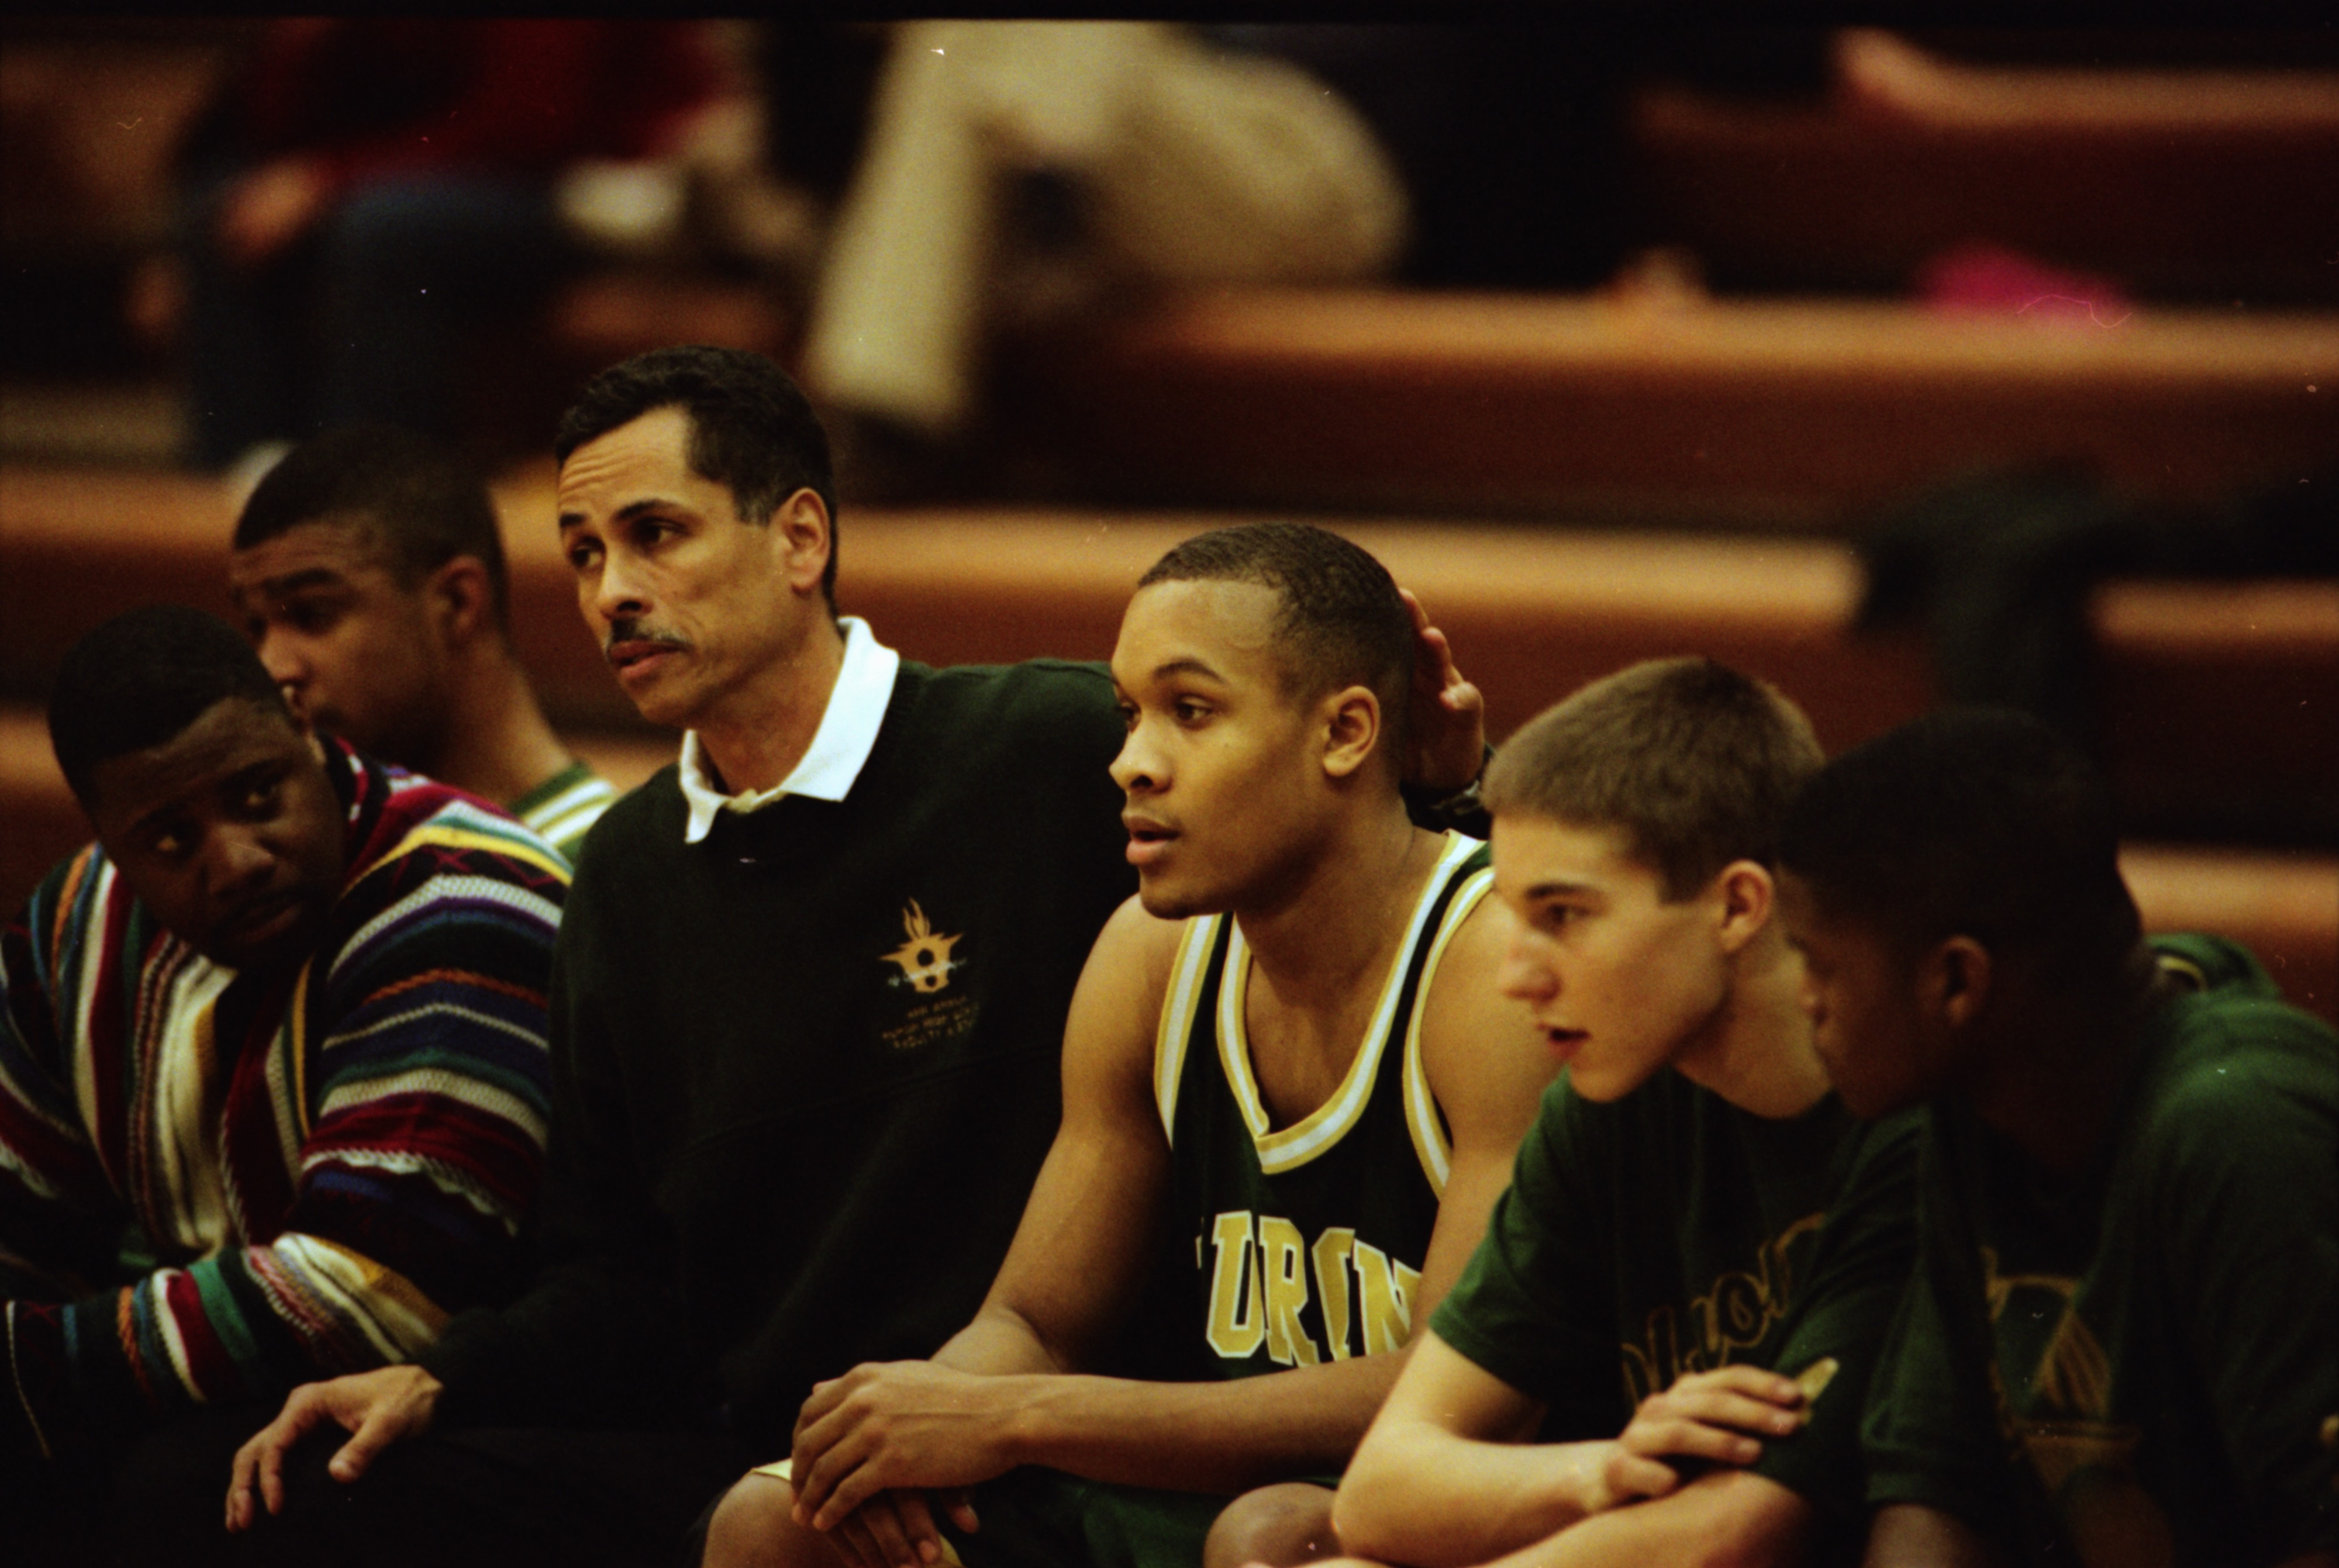 Huron Basketball Coach Harold Simons Sits on Bench with Players, March 1998 image